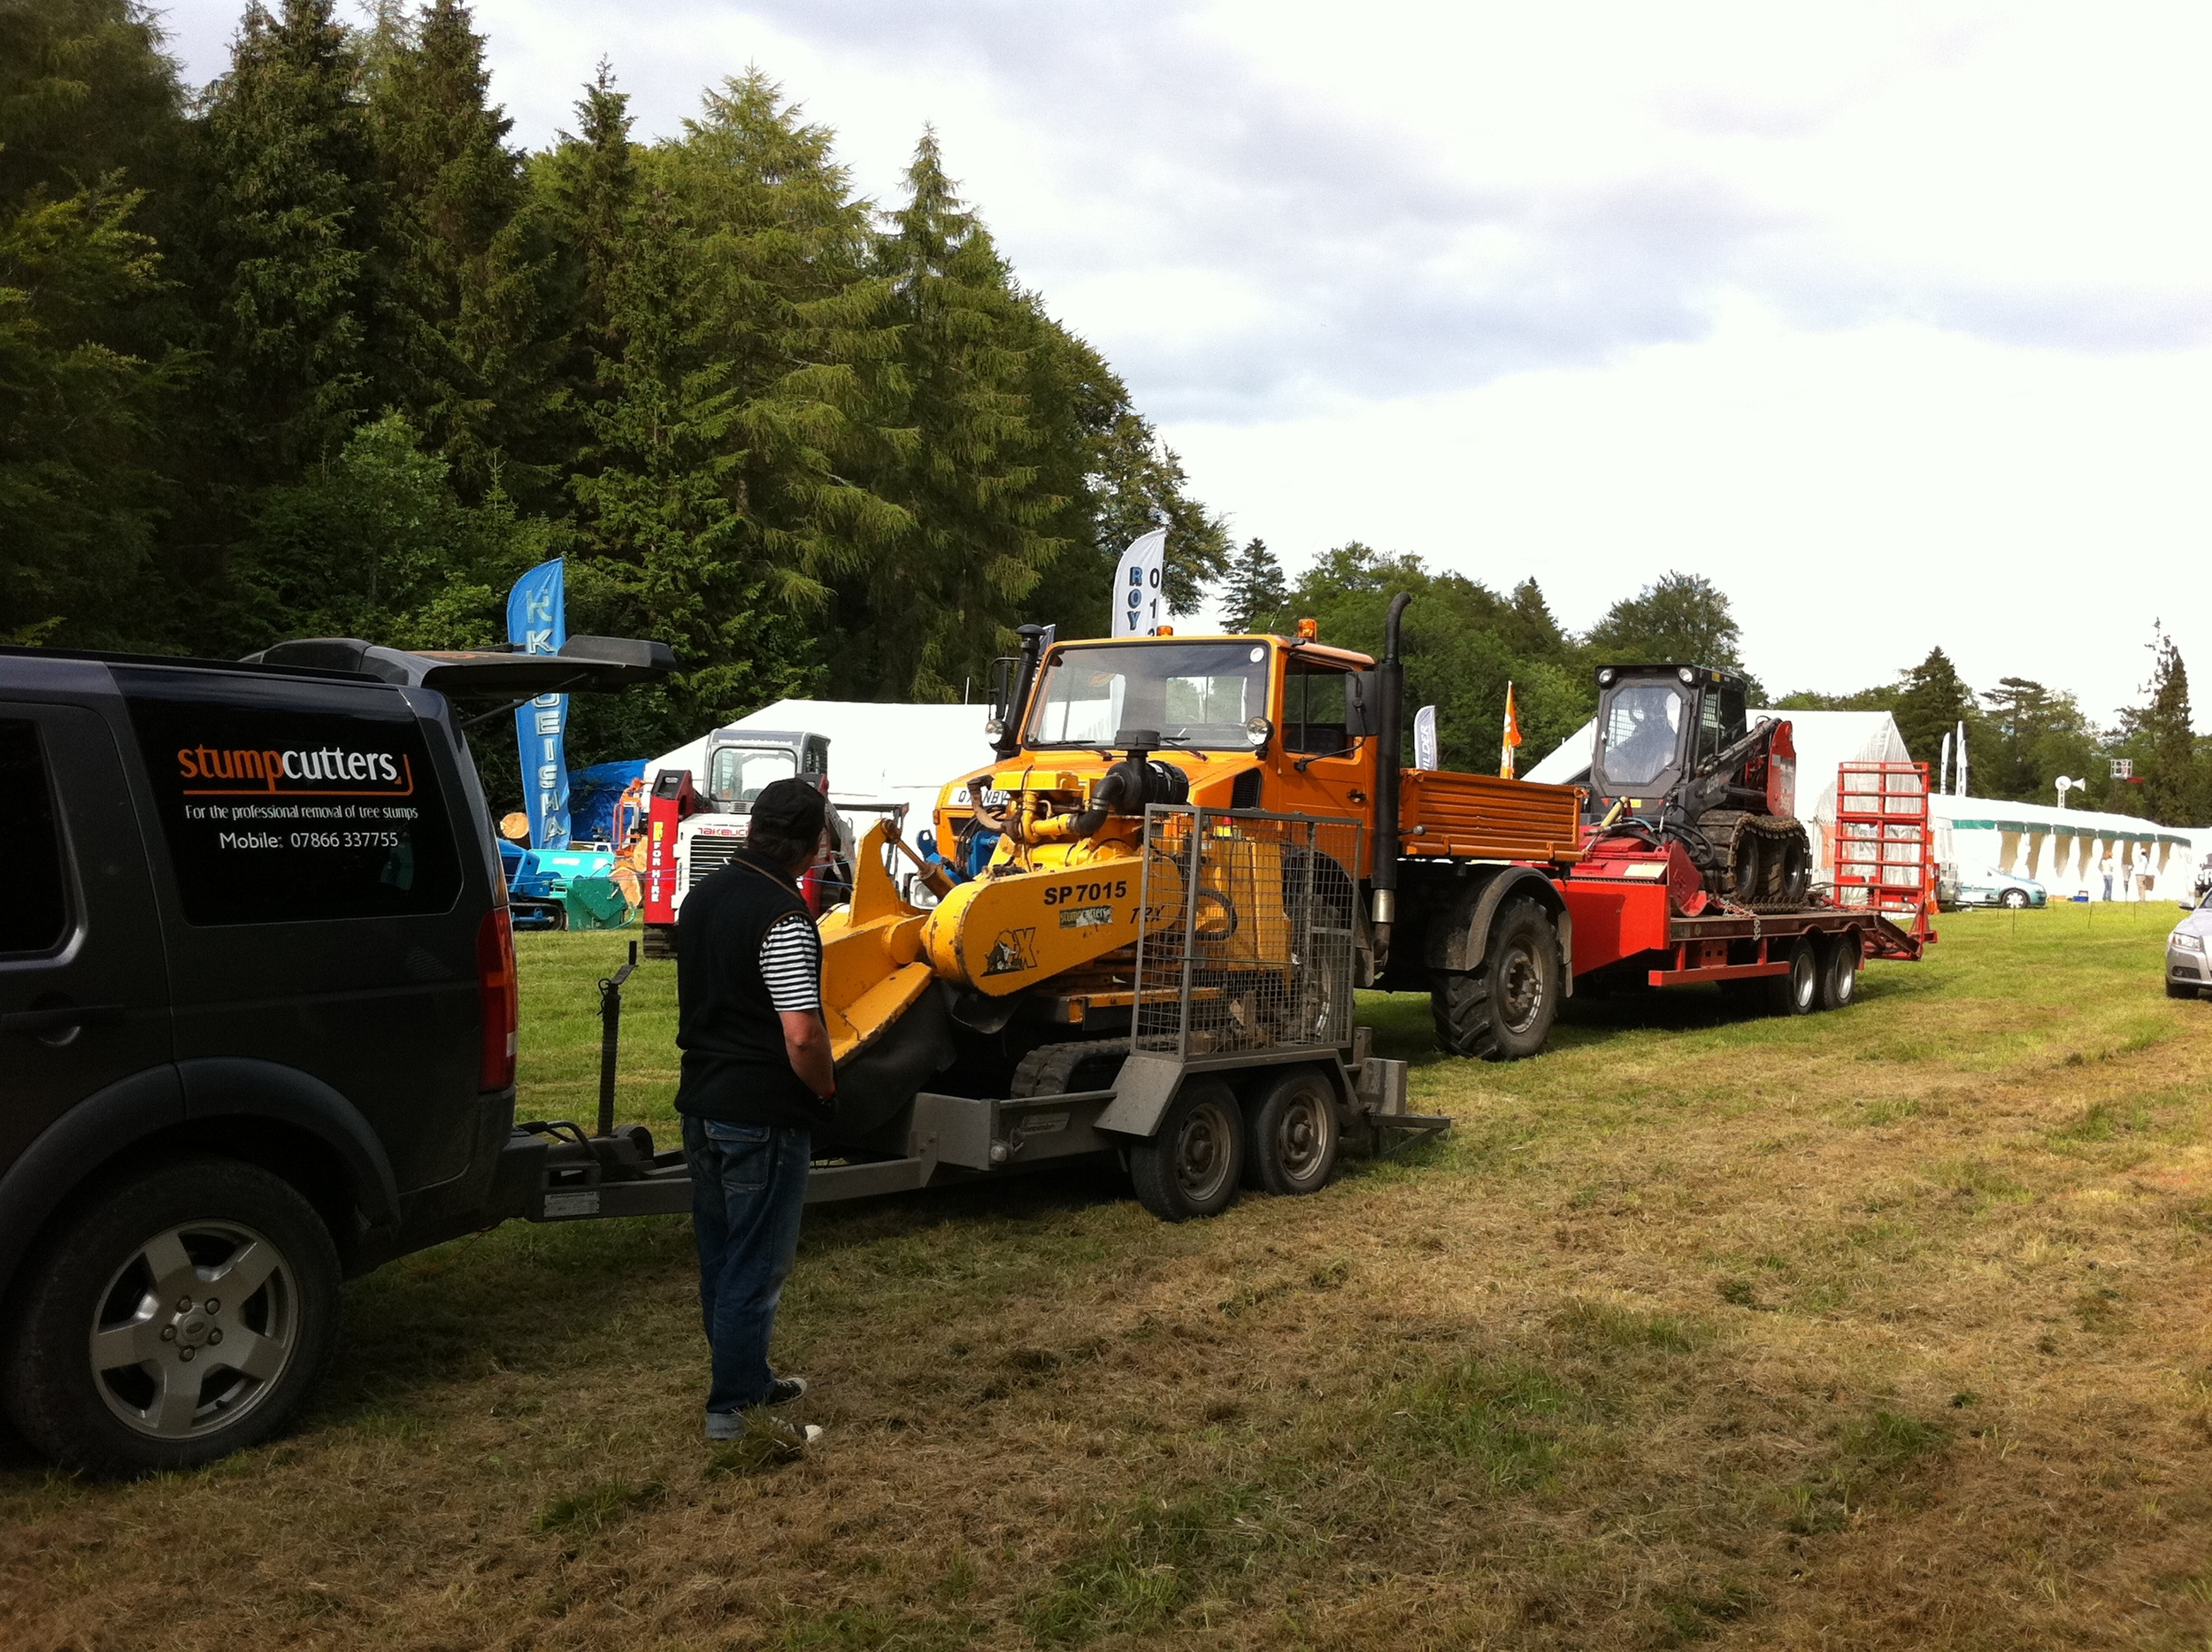 Delivering our Carlton 7015 stump grinder to Arb Show, Cirencester